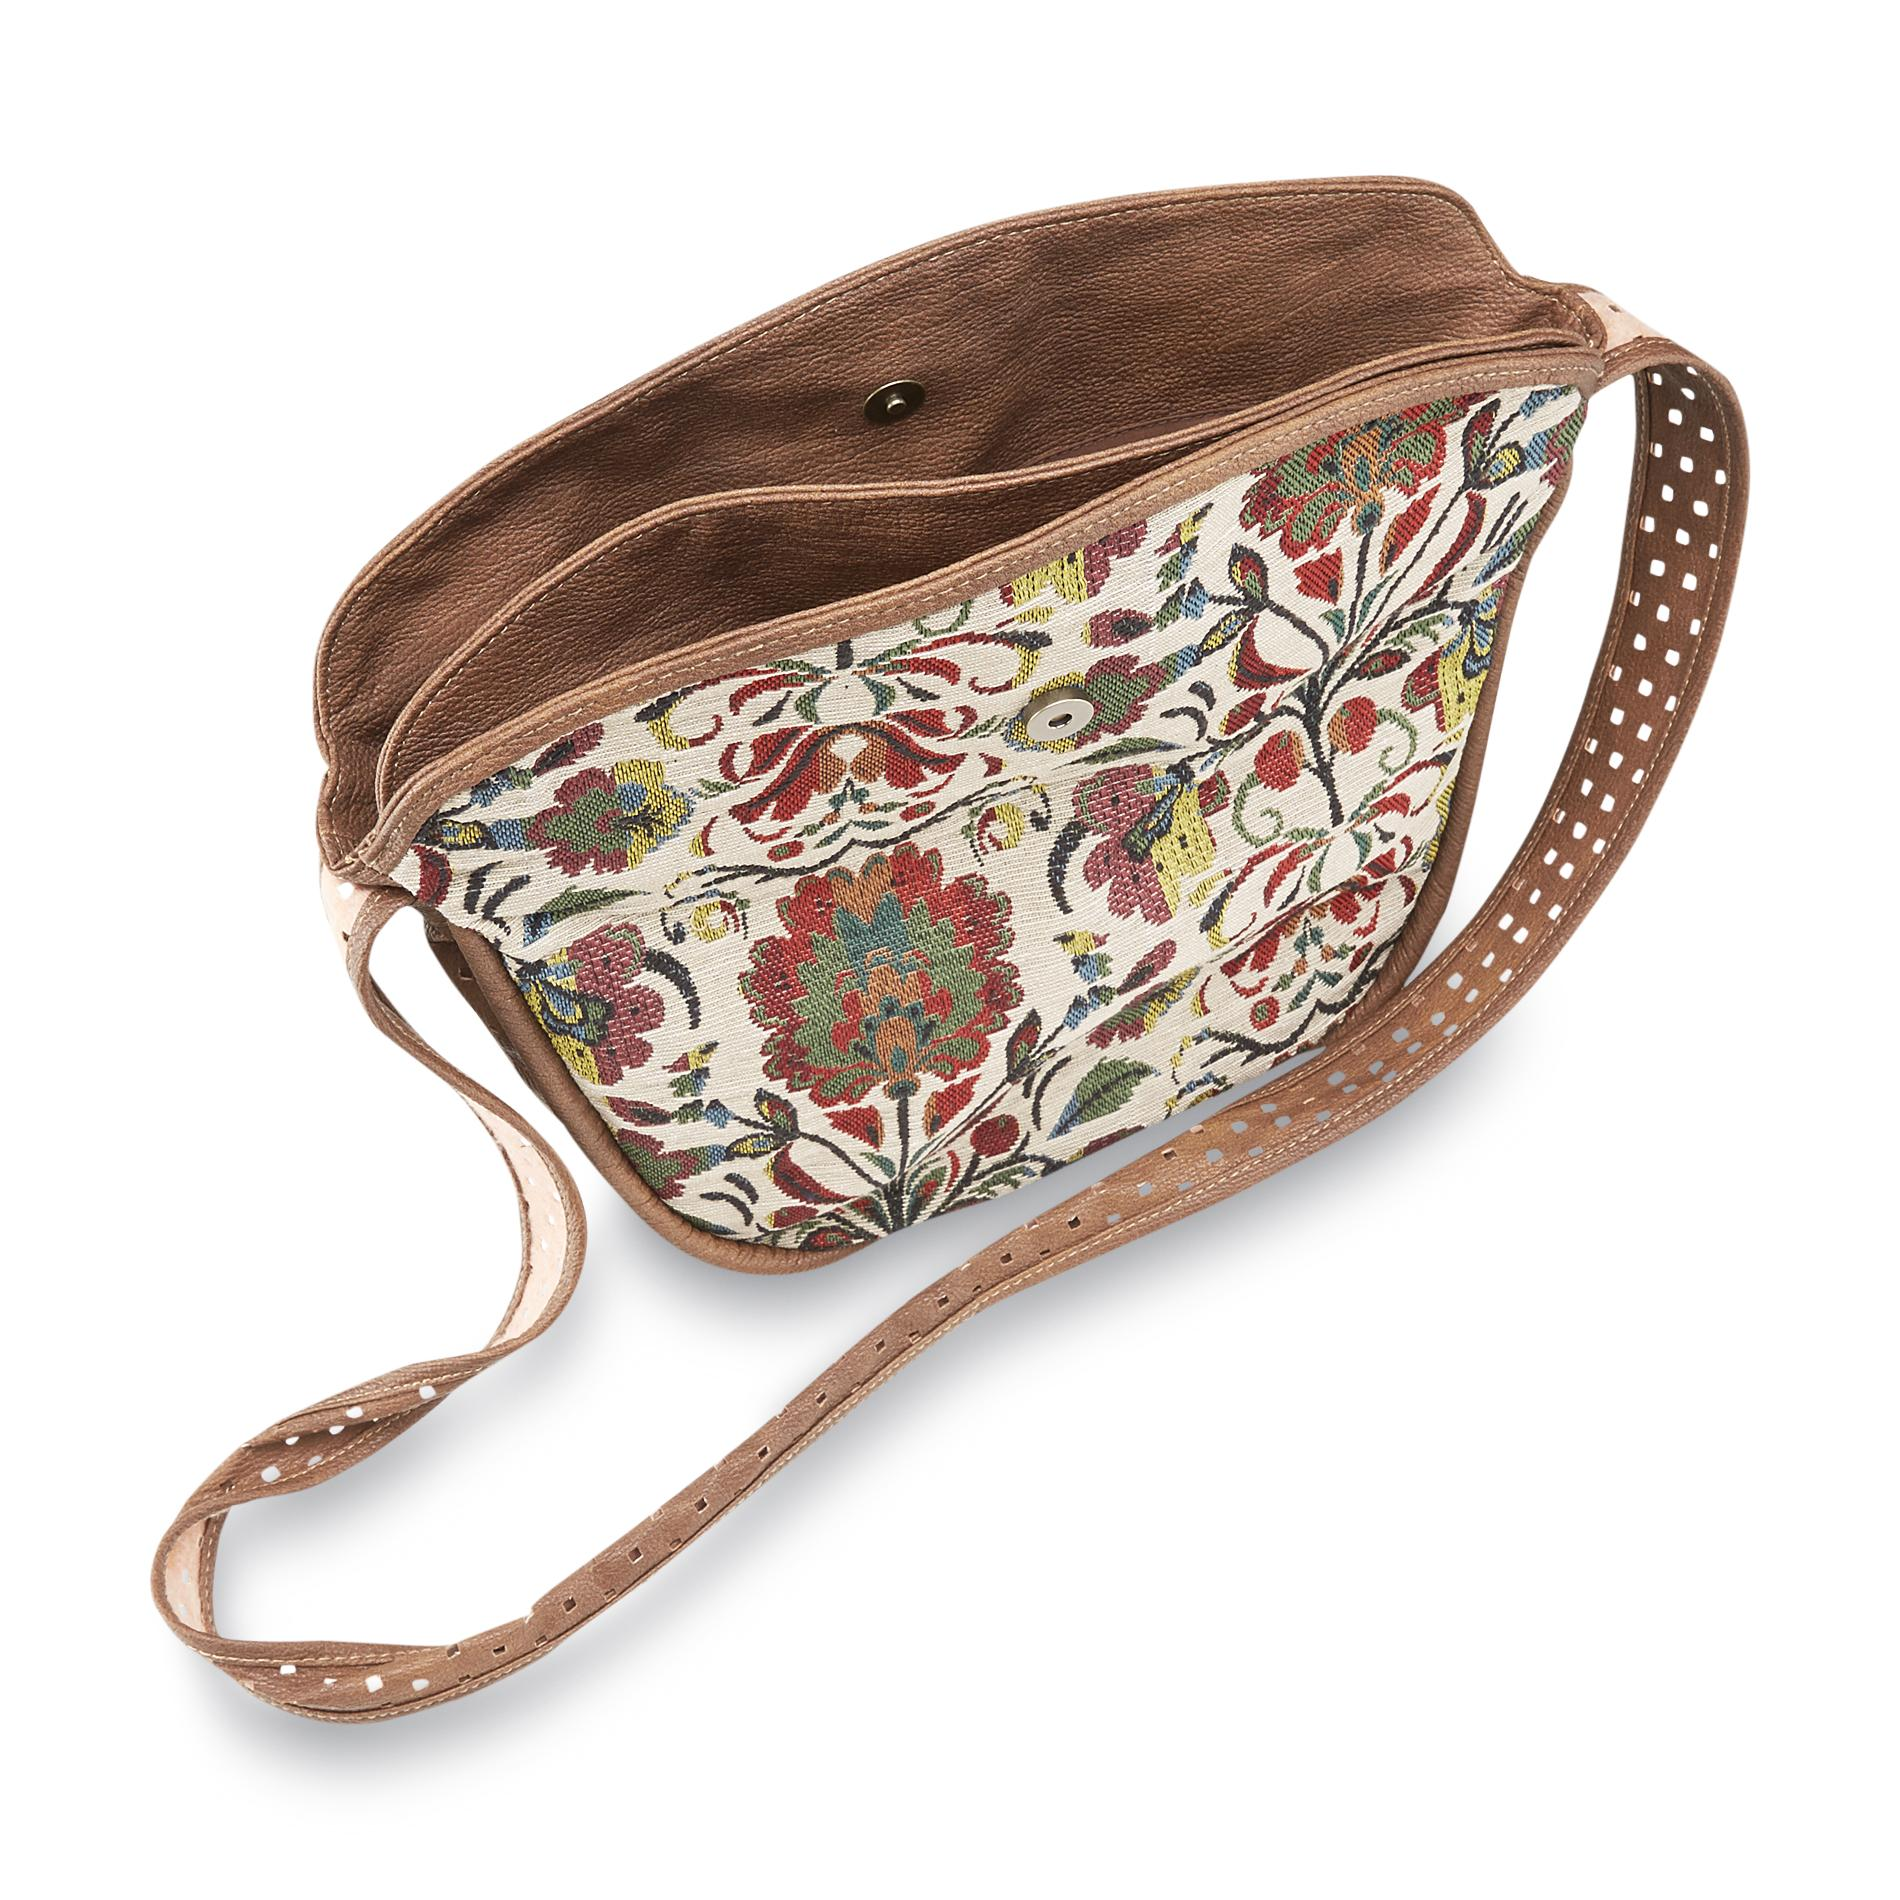 Joe Boxer Women's Crossbody Bag - Tribal